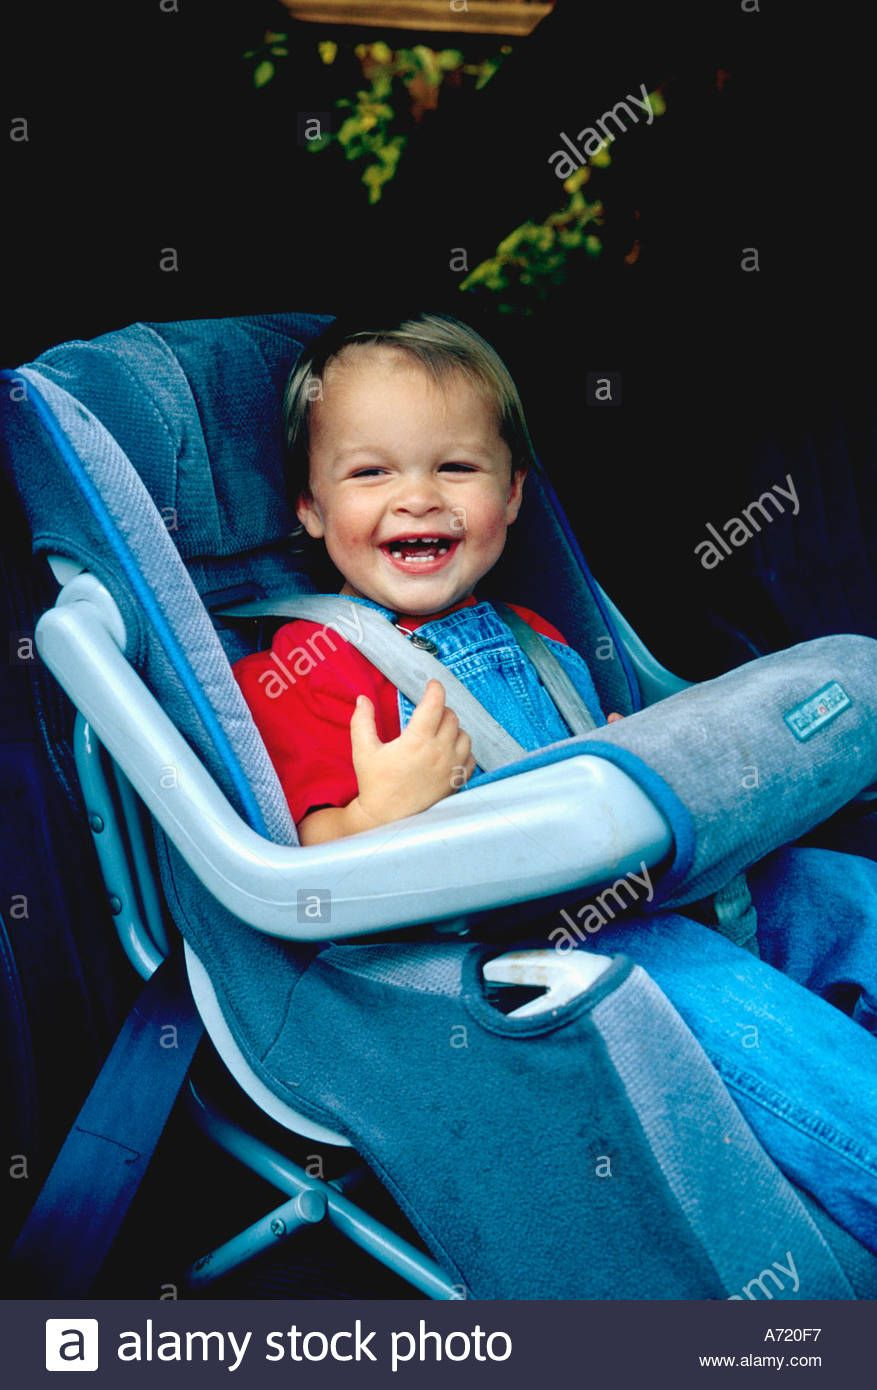 Download this stock image: Infant boy smiling as he has been strapped into  the car seat - A720F7 from Alamy's … | Car seats, Vintage baby gear,  Toddler car seat